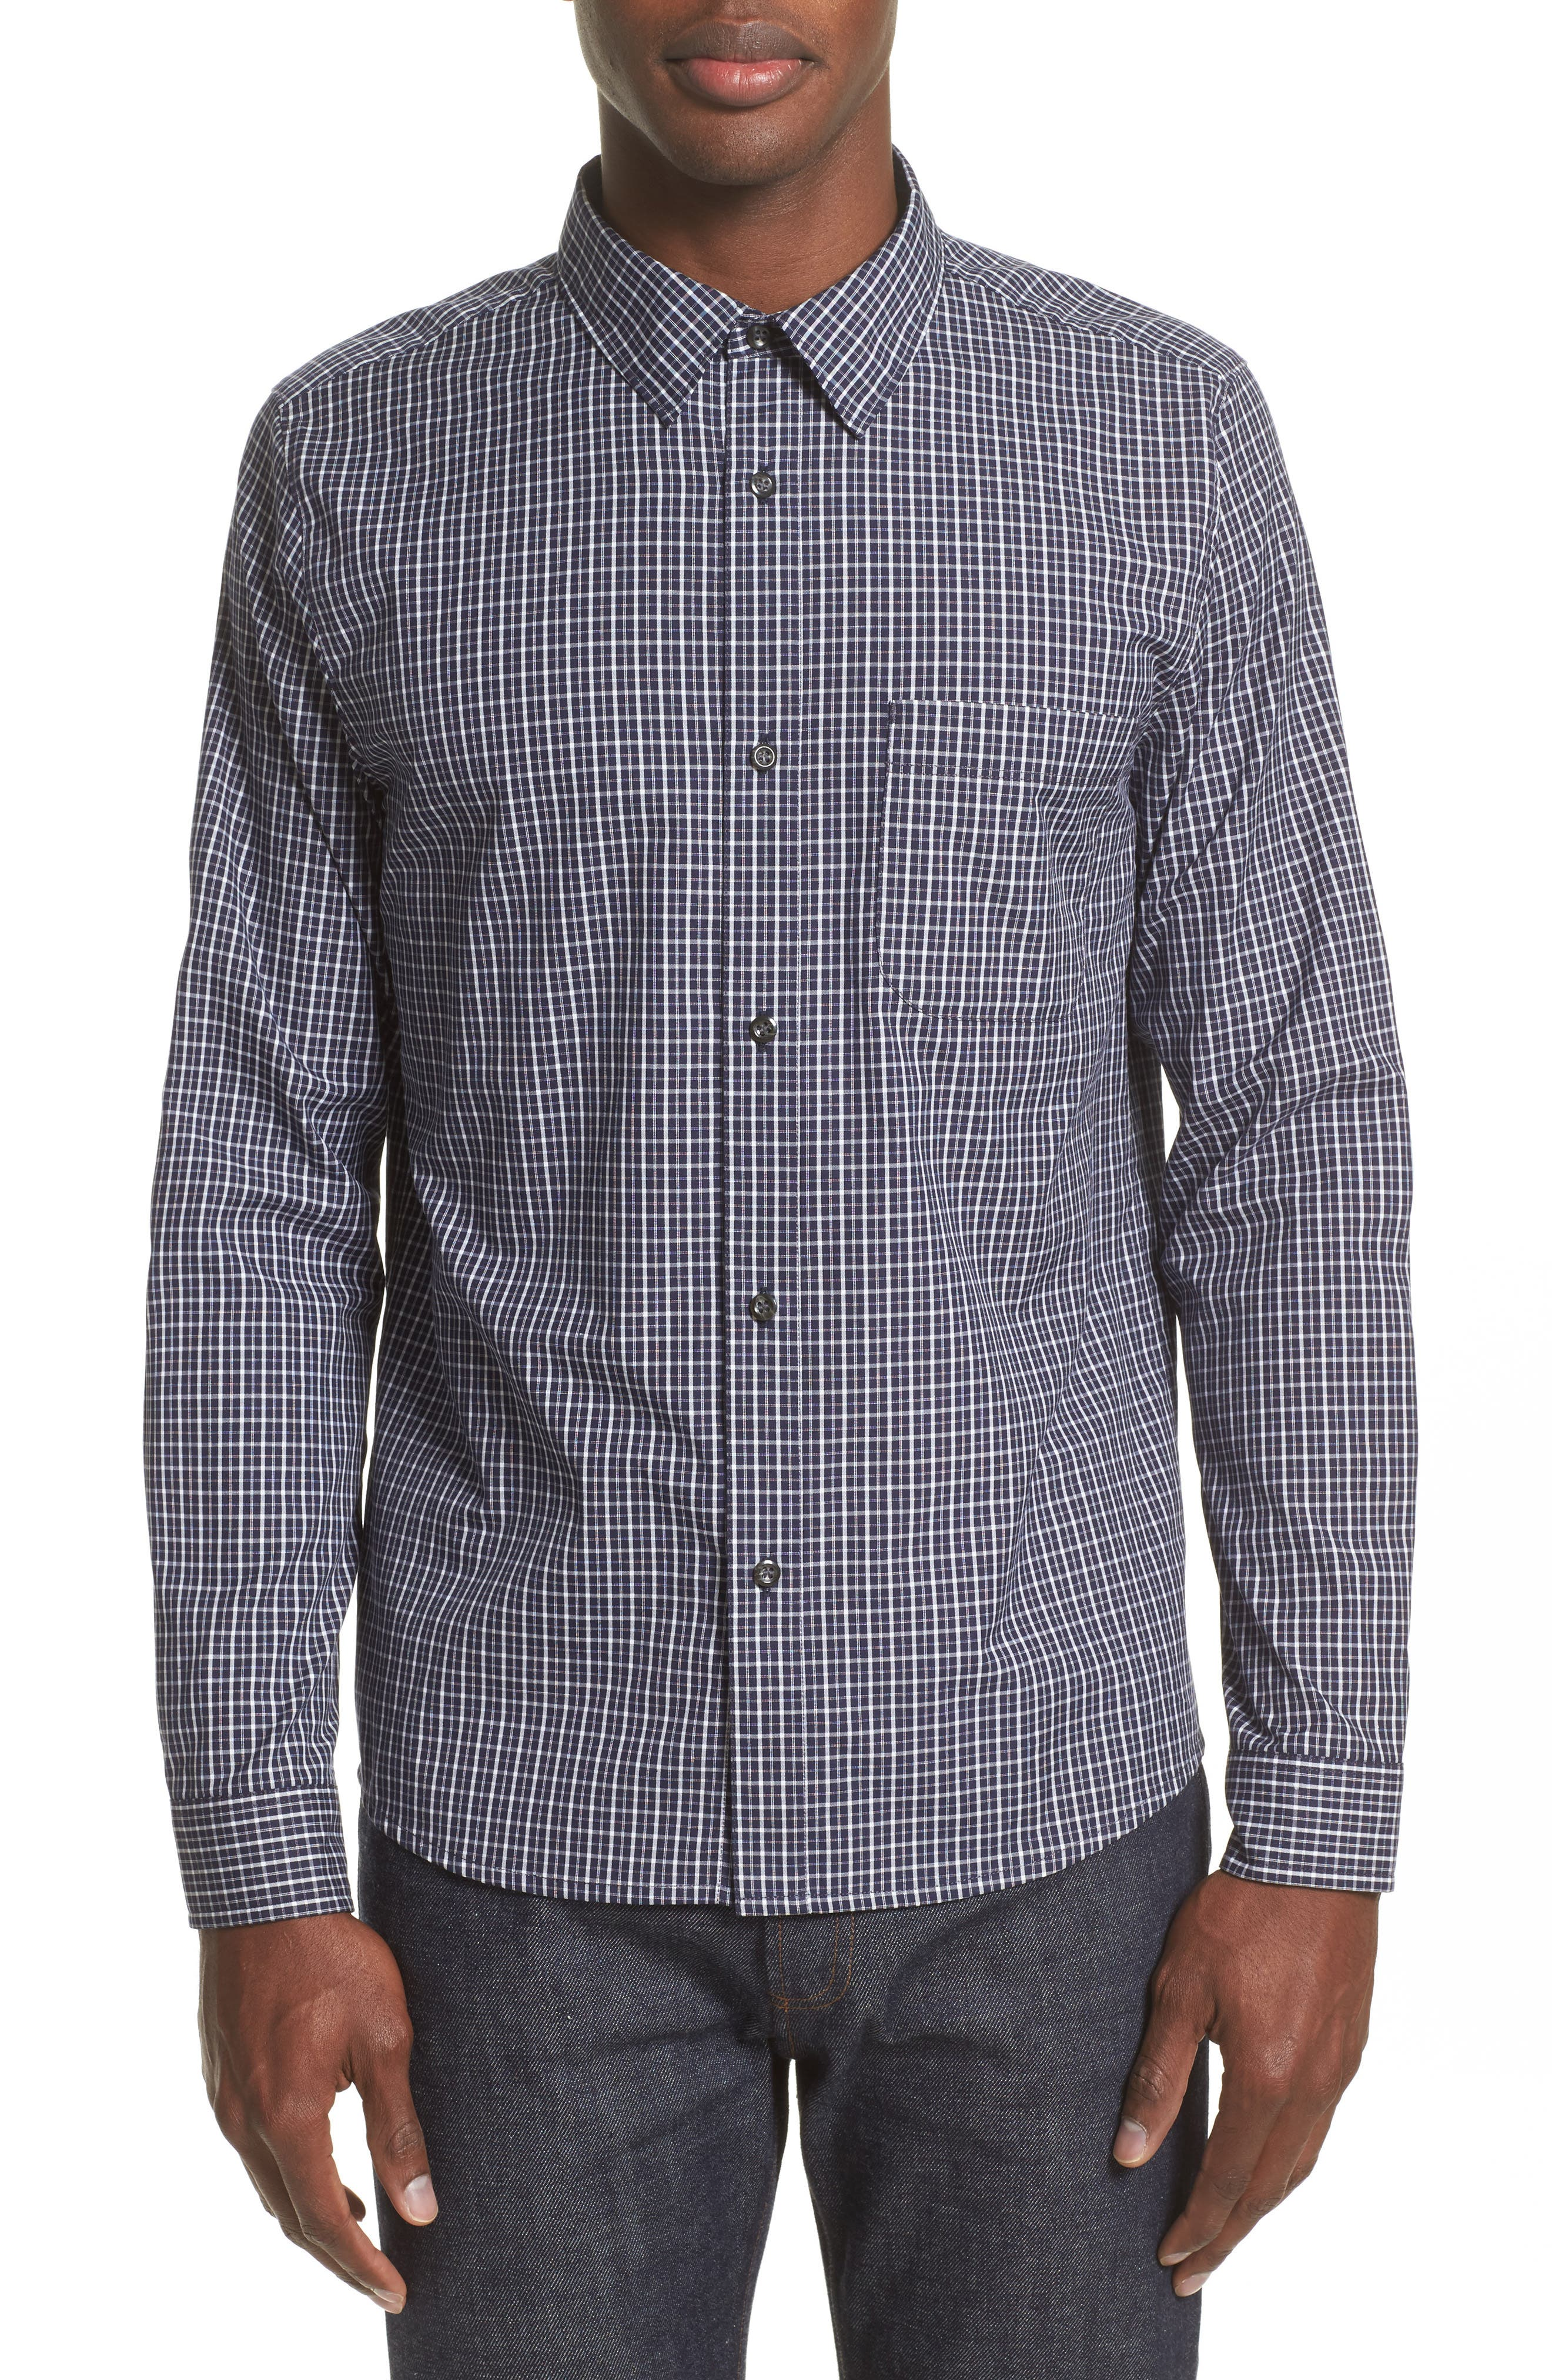 Alternate Image 1 Selected - A.P.C. Chemise Trek Woven Check Sport Shirt